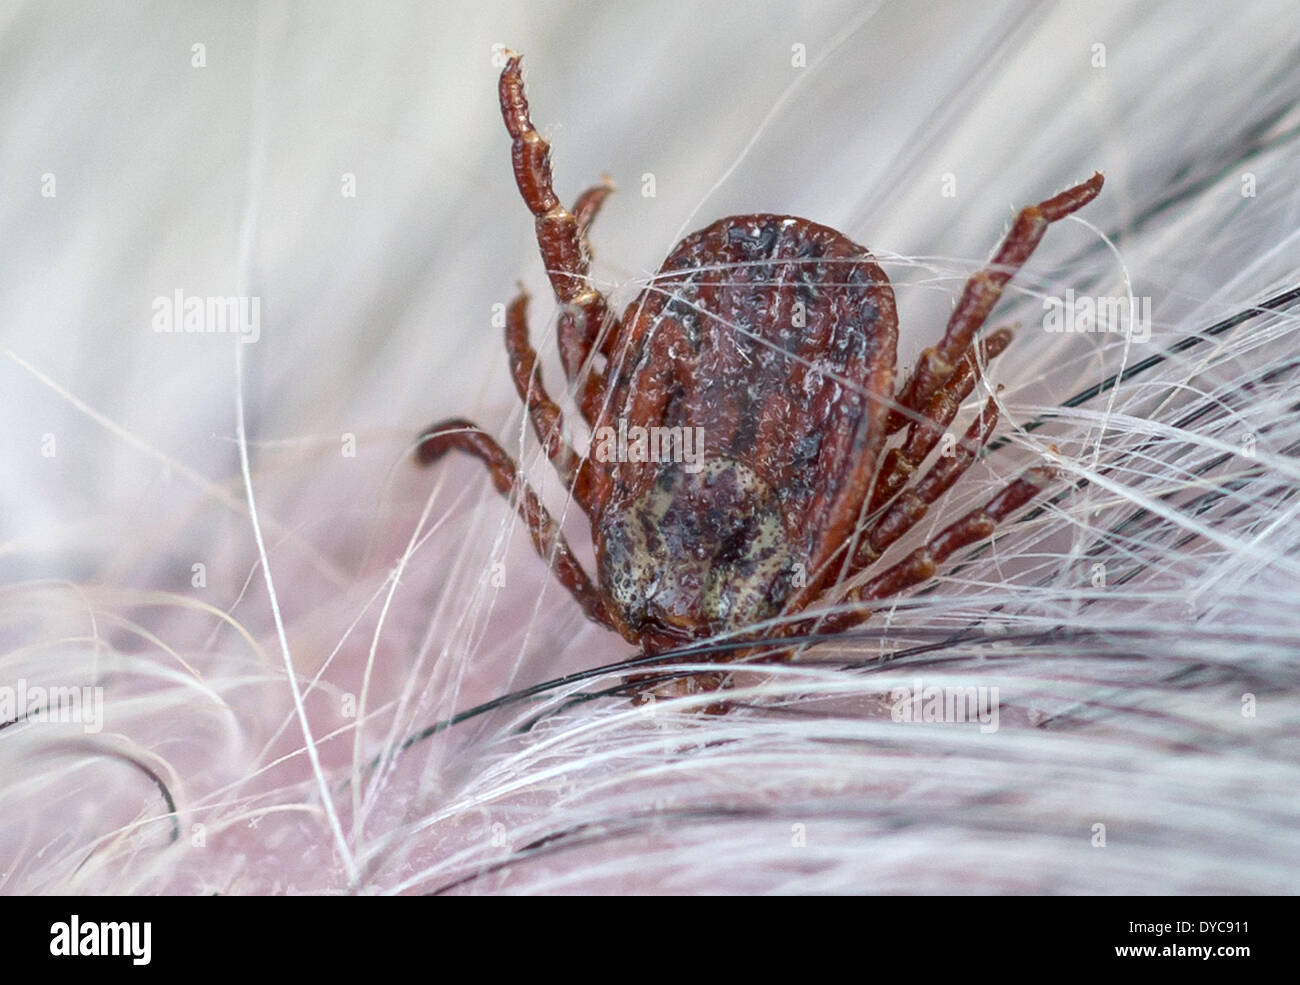 Eichwalde, Germany. 6th Apr, 2014. A tick (Dermacentor reticulatus) crawls on the fur of a dog in Eichwalde, Germany, 6 April 2014. Ticks are parasites which can transmit a variety of illnesses onto humans. Photo: Tim Brakemeier/dpa/Alamy Live News - Stock Image